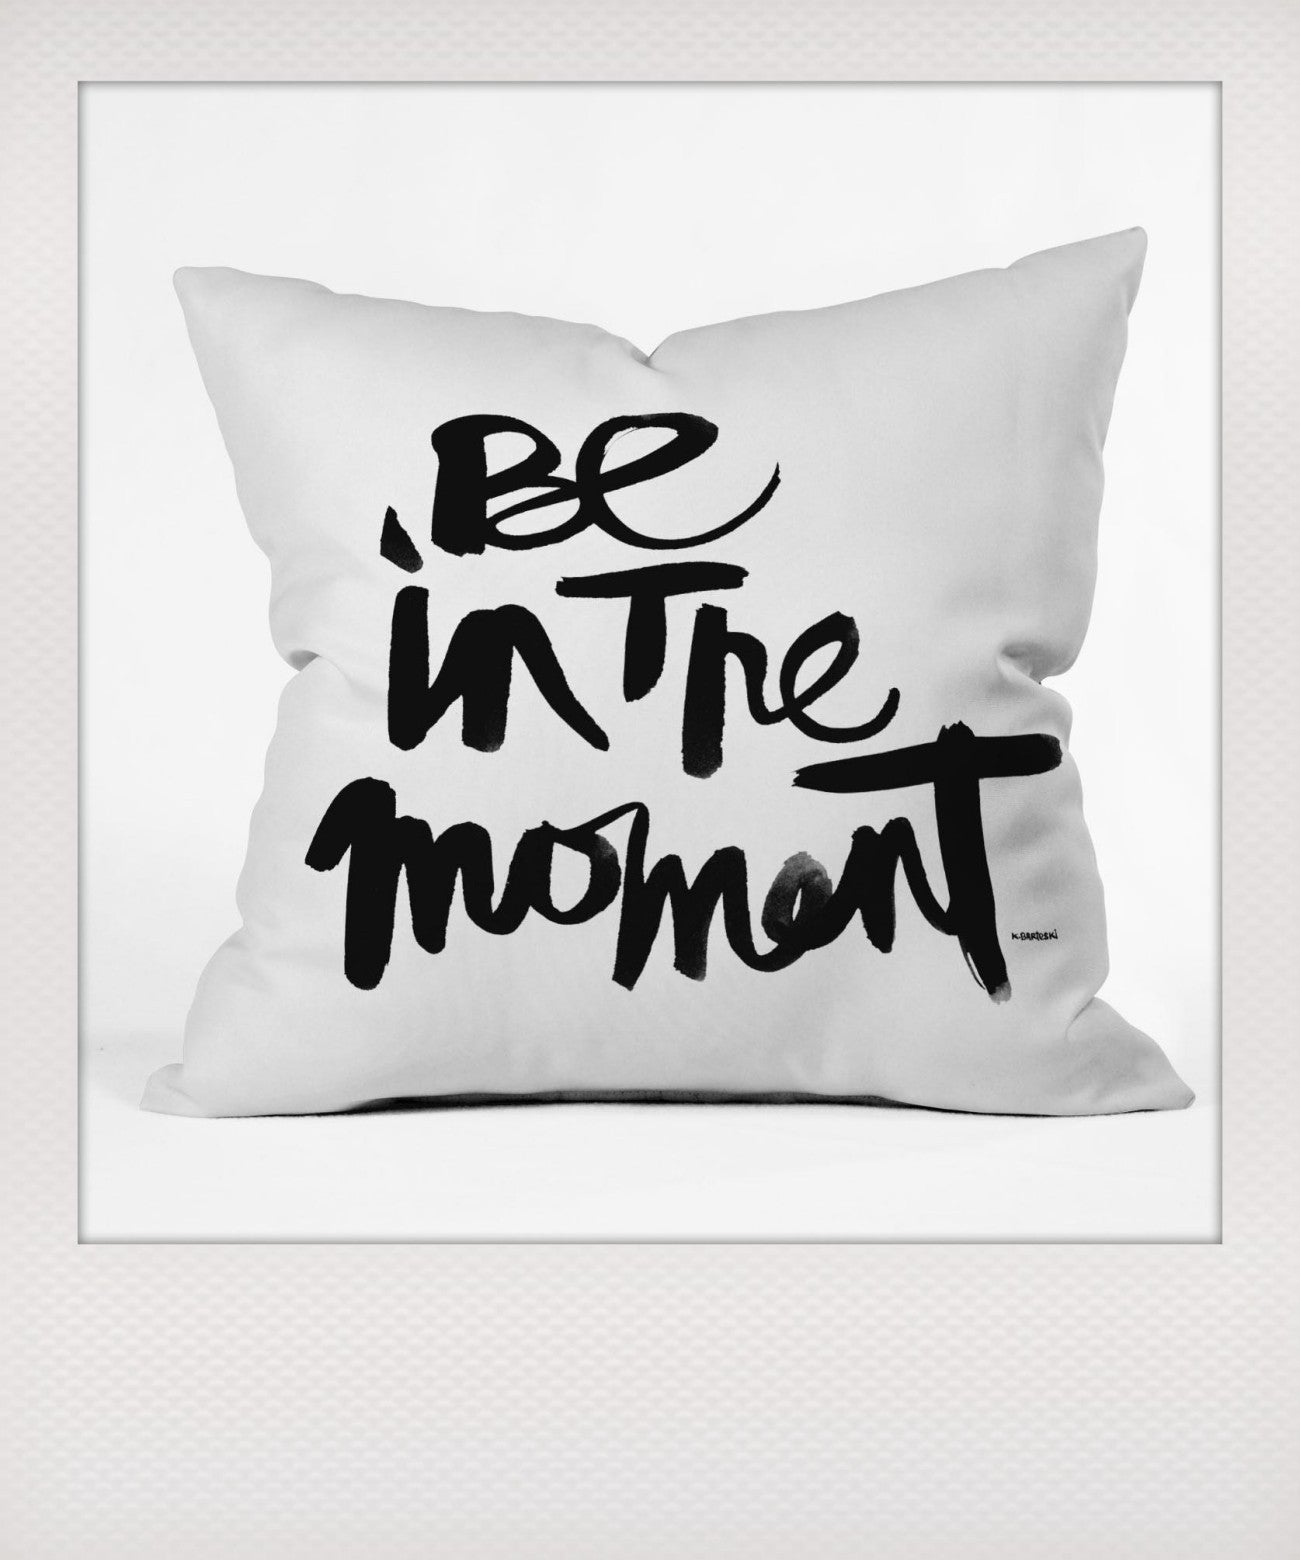 Deny Designs In the Moment Outdoor Cushion